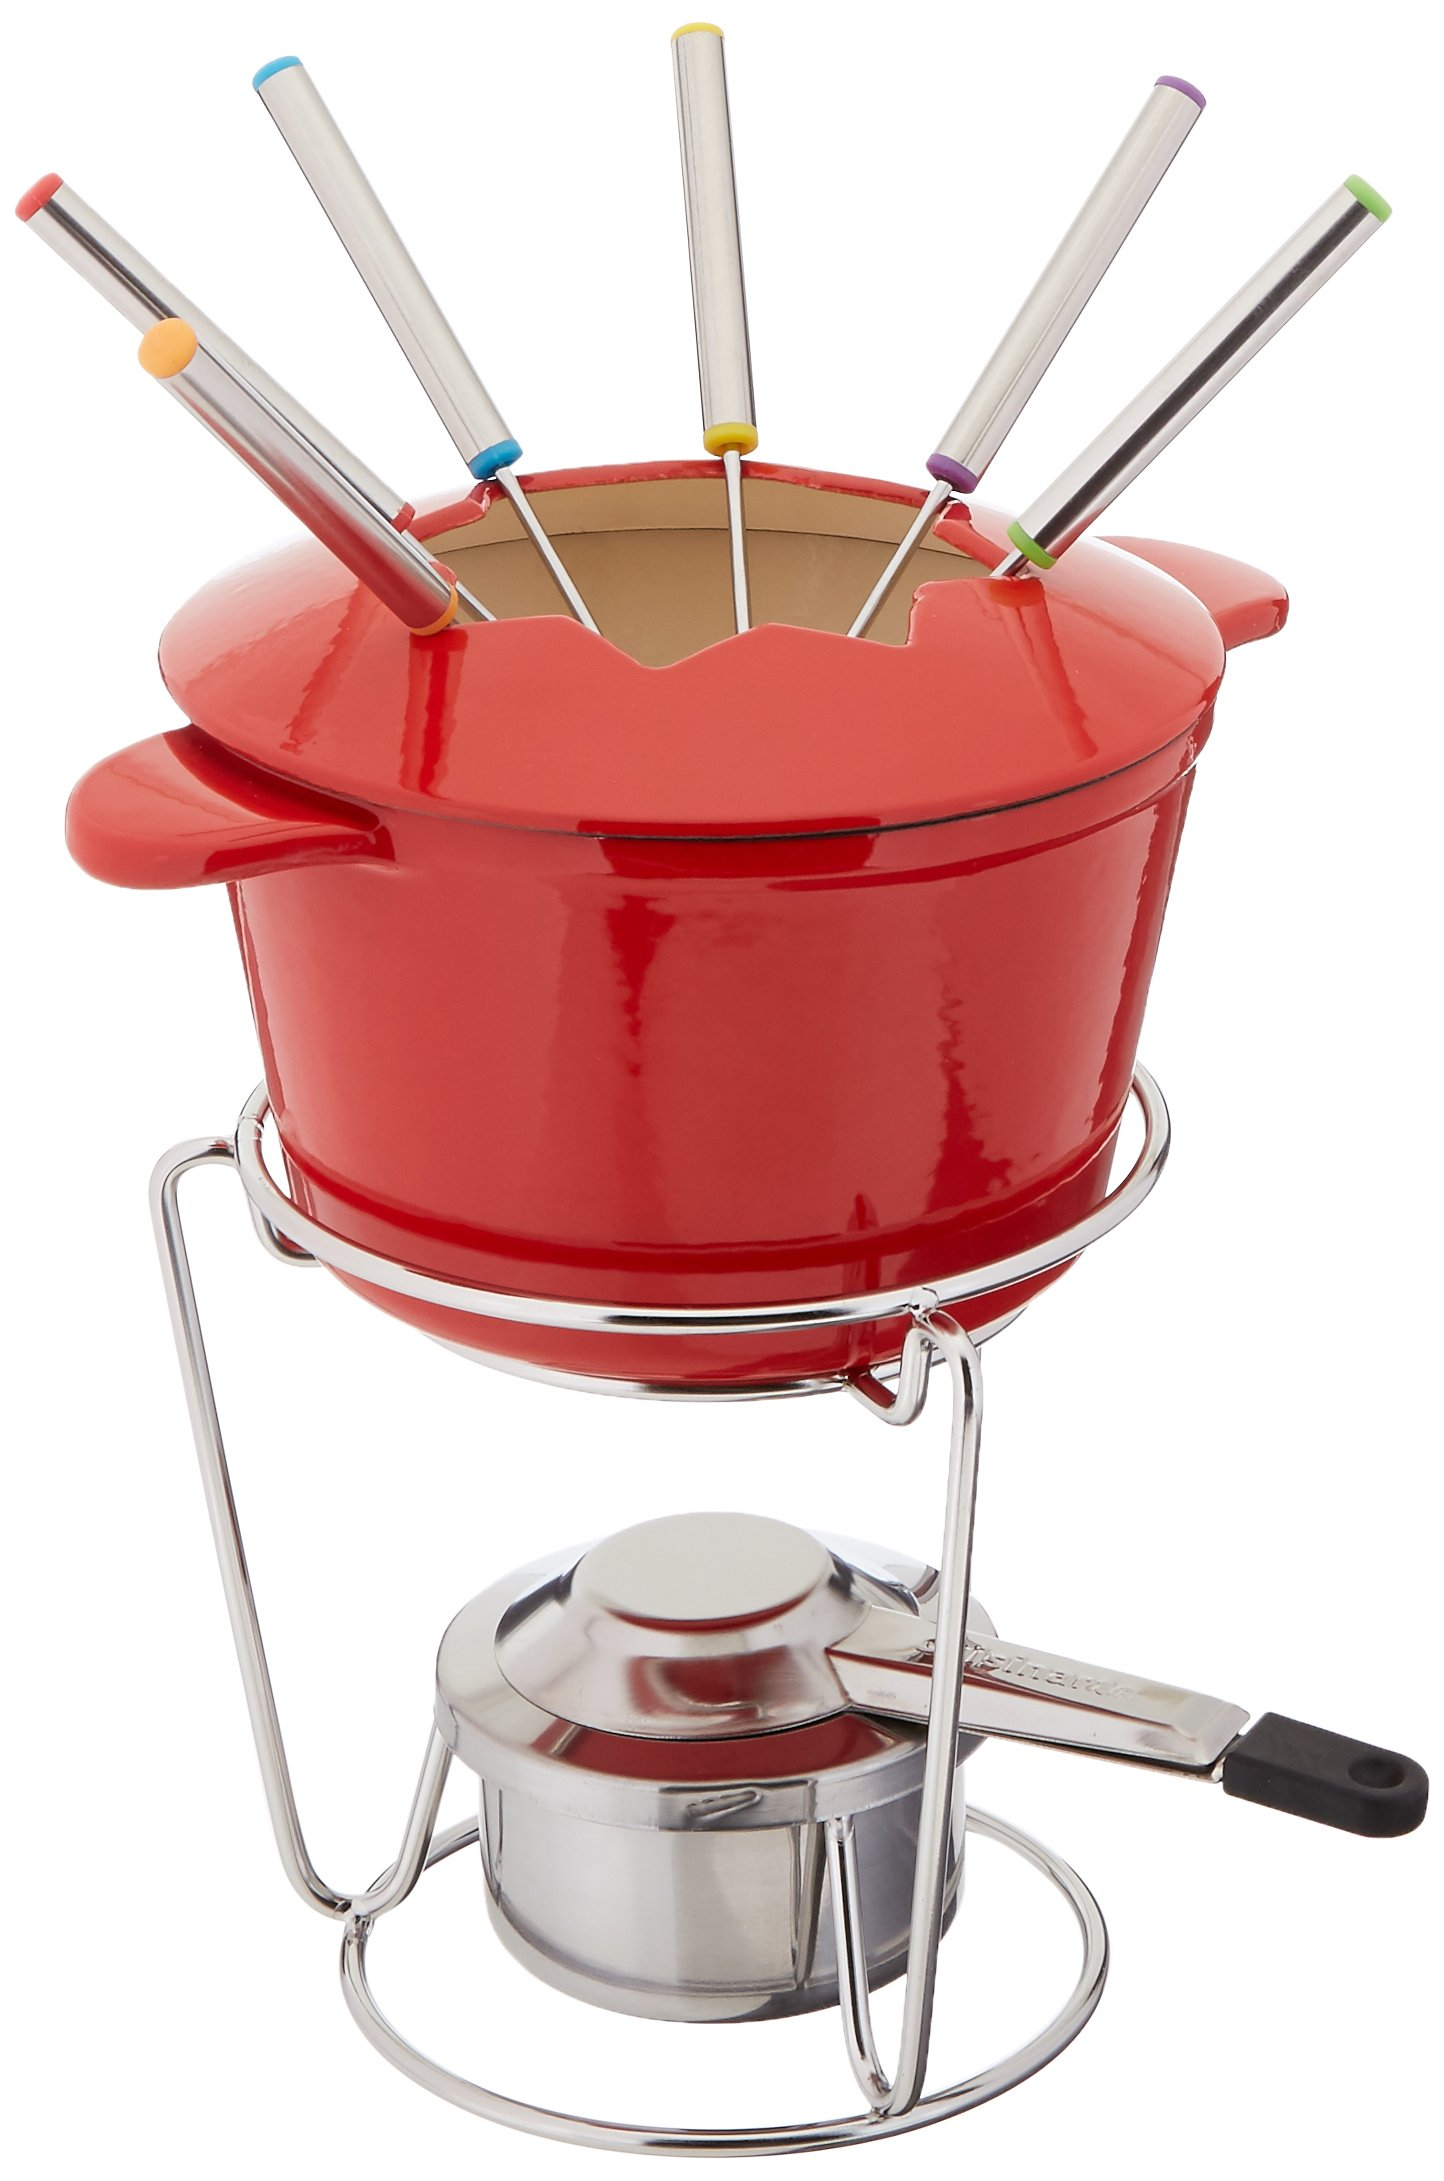 Cuisinart FP-115RS 13-Piece Cast Iron Fondue Set, Red by Cuisinart (Image #1)